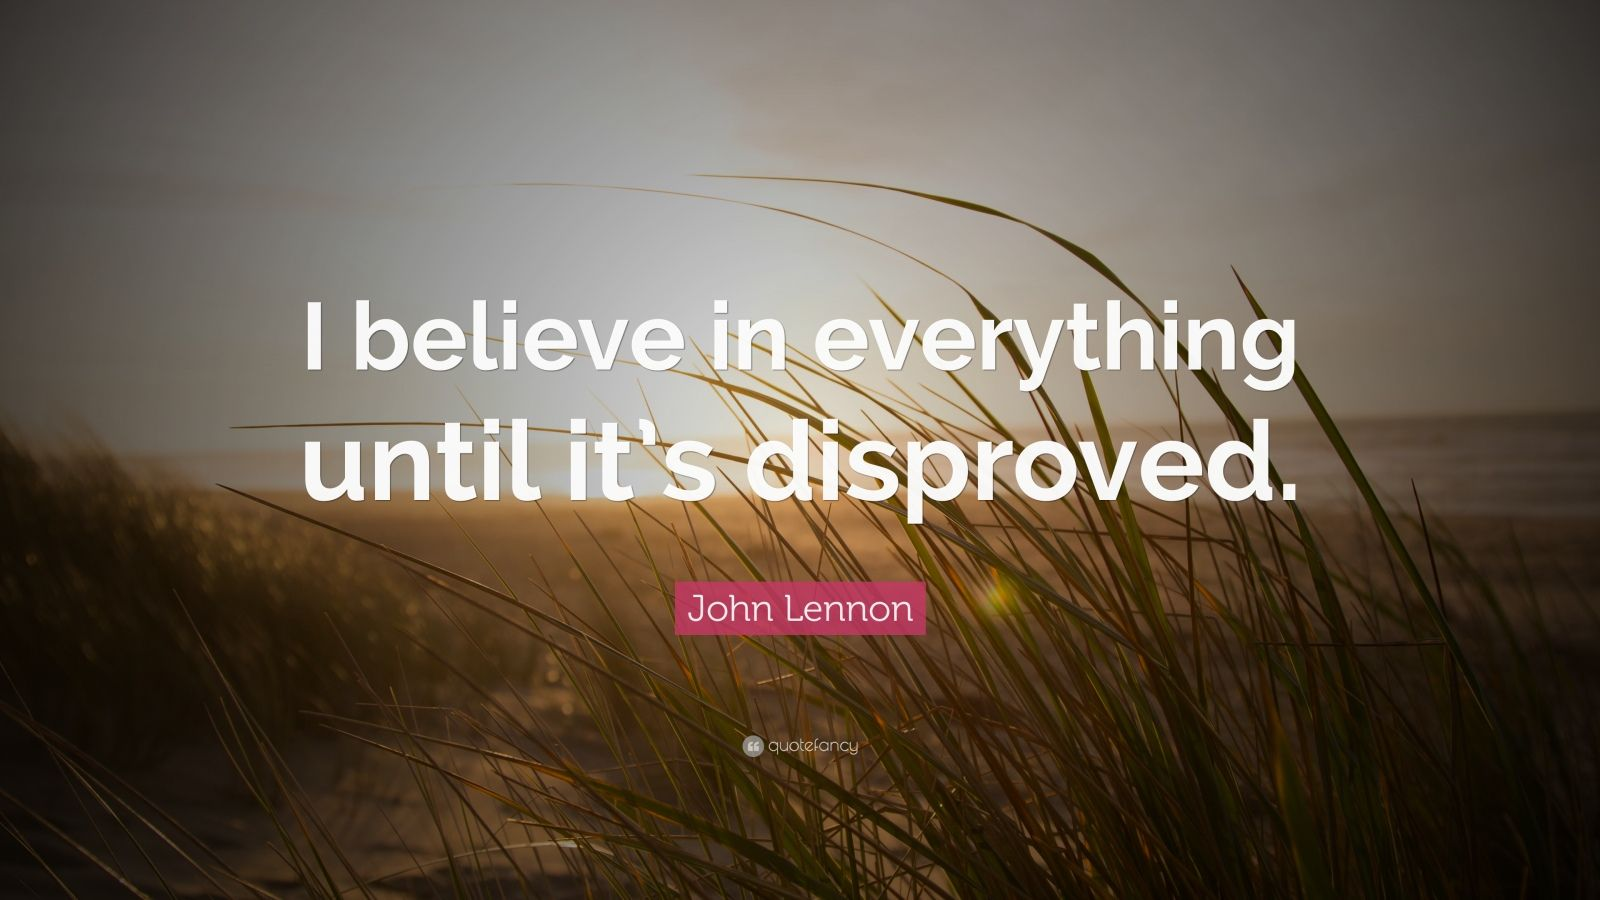 """John Lennon Quote: """"I believe in everything until it's disproved."""""""